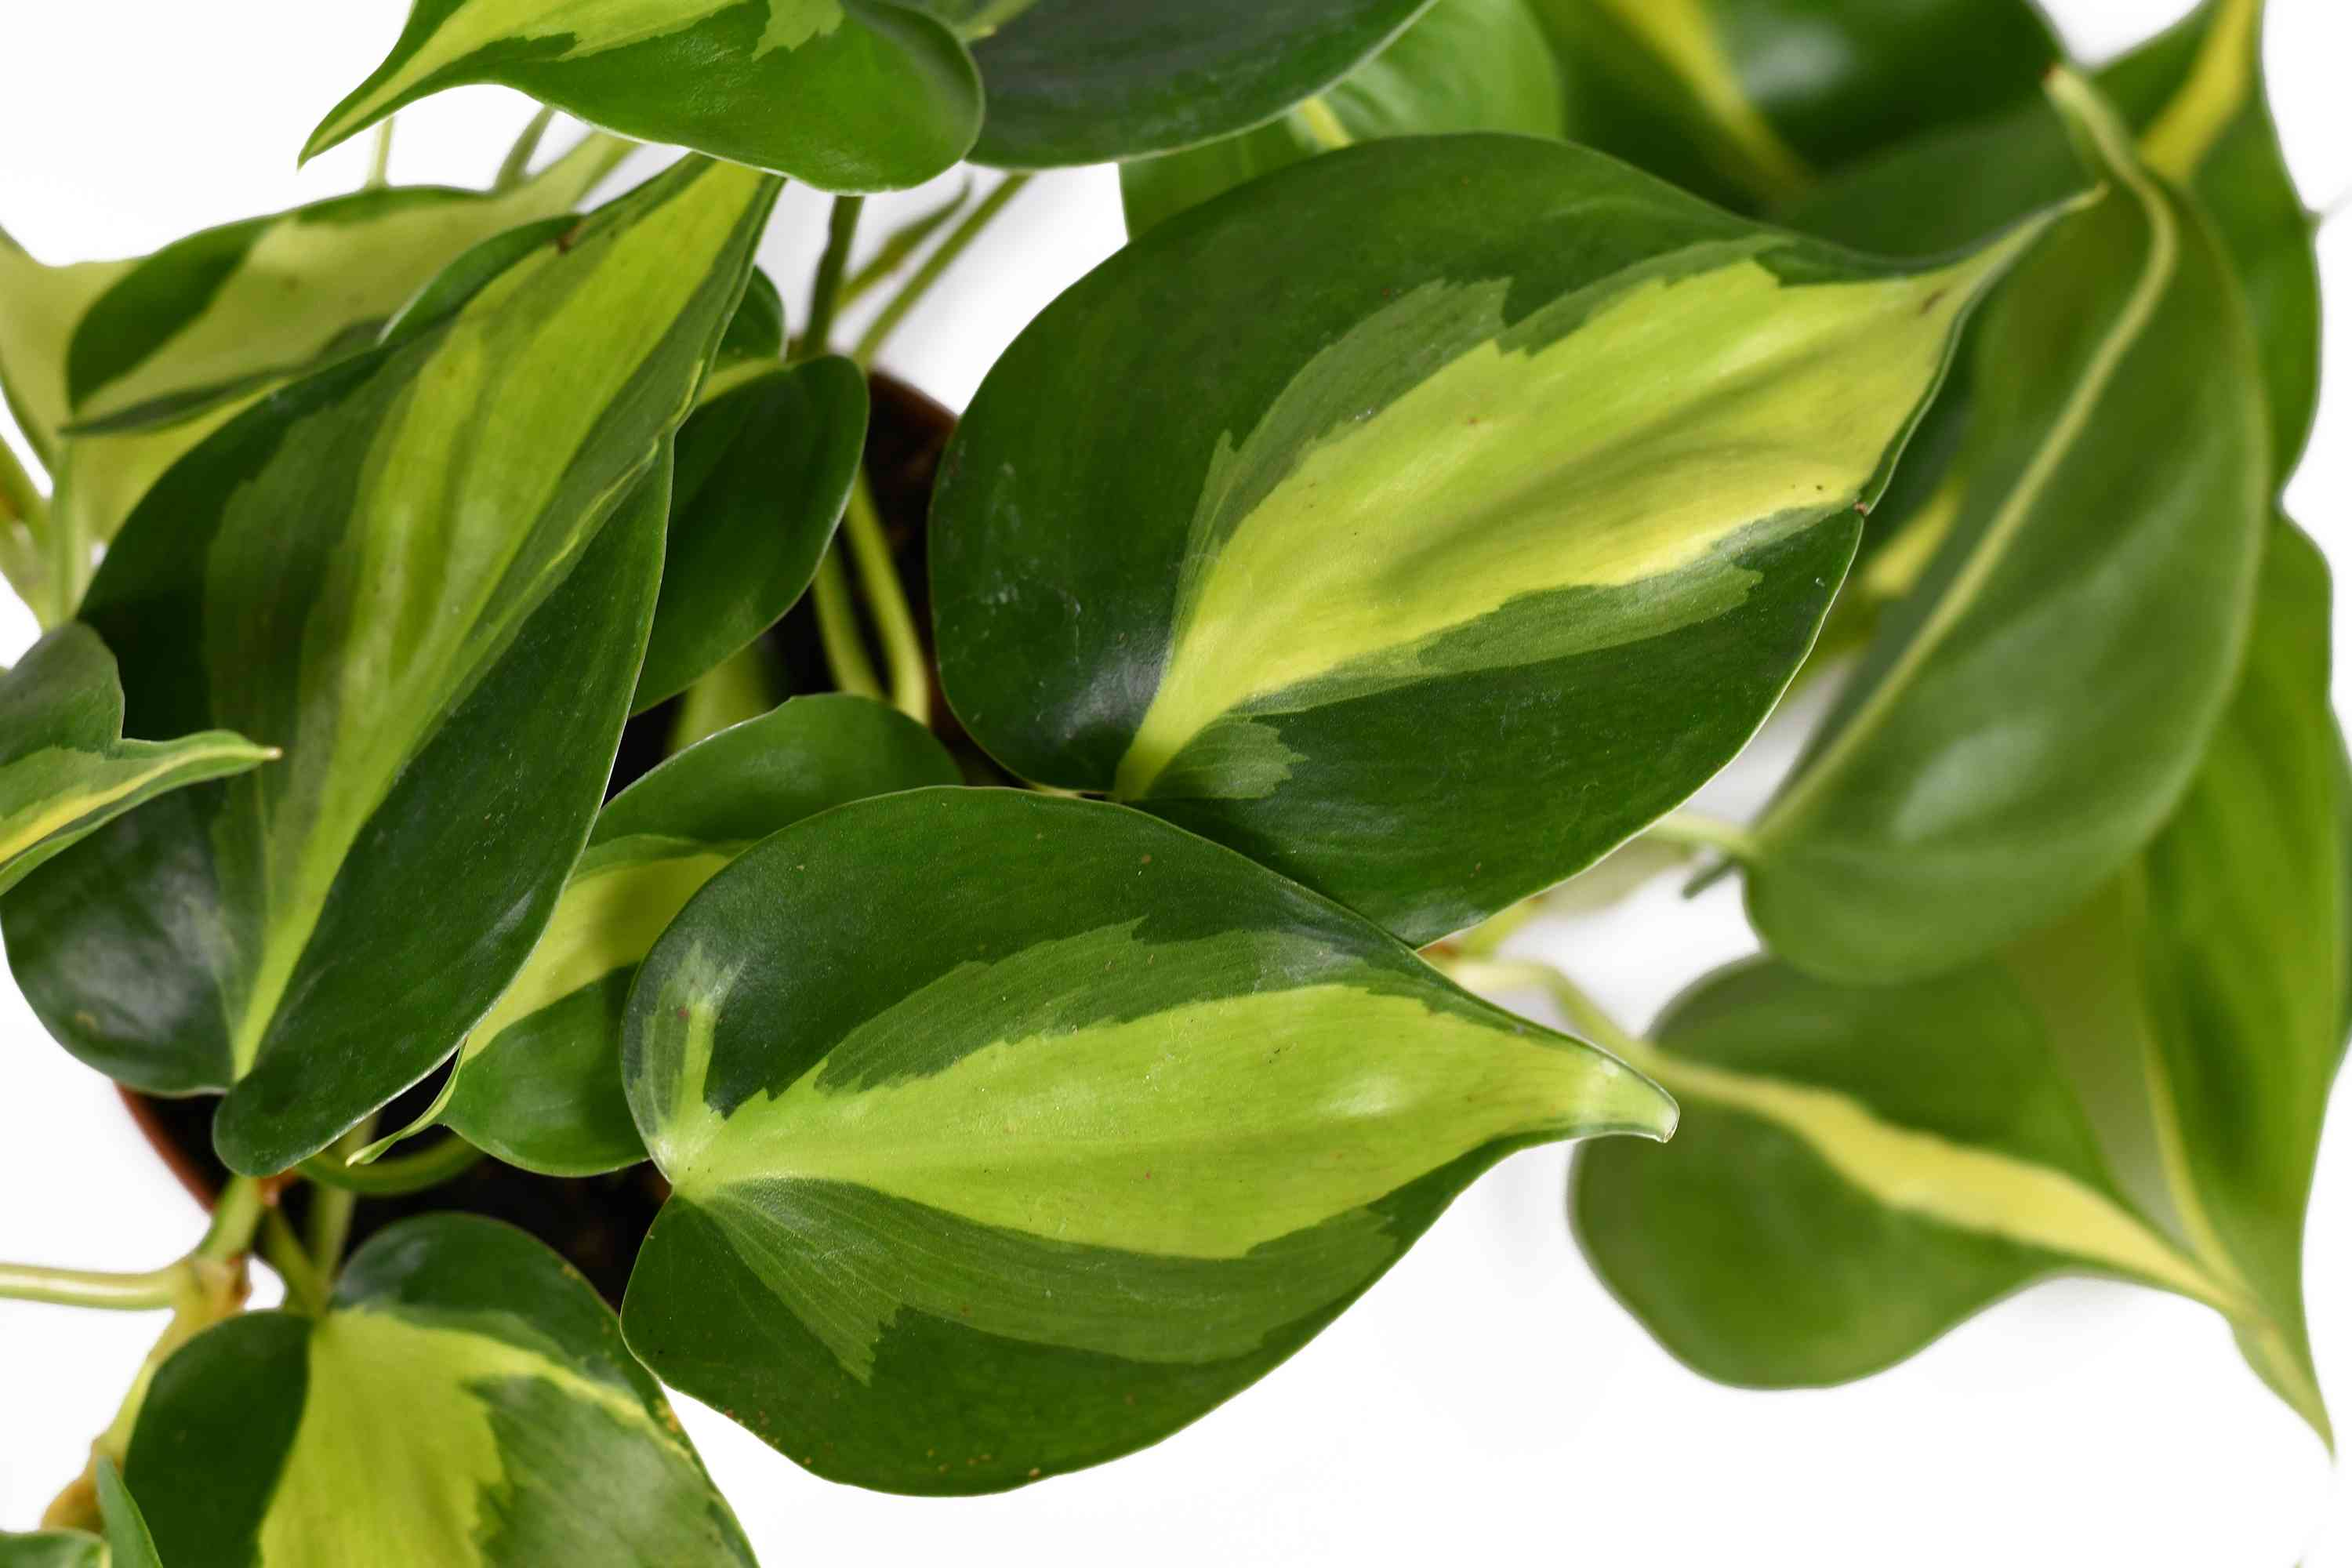 Philodendron Brasil leaves close up showing shades of green variegation.